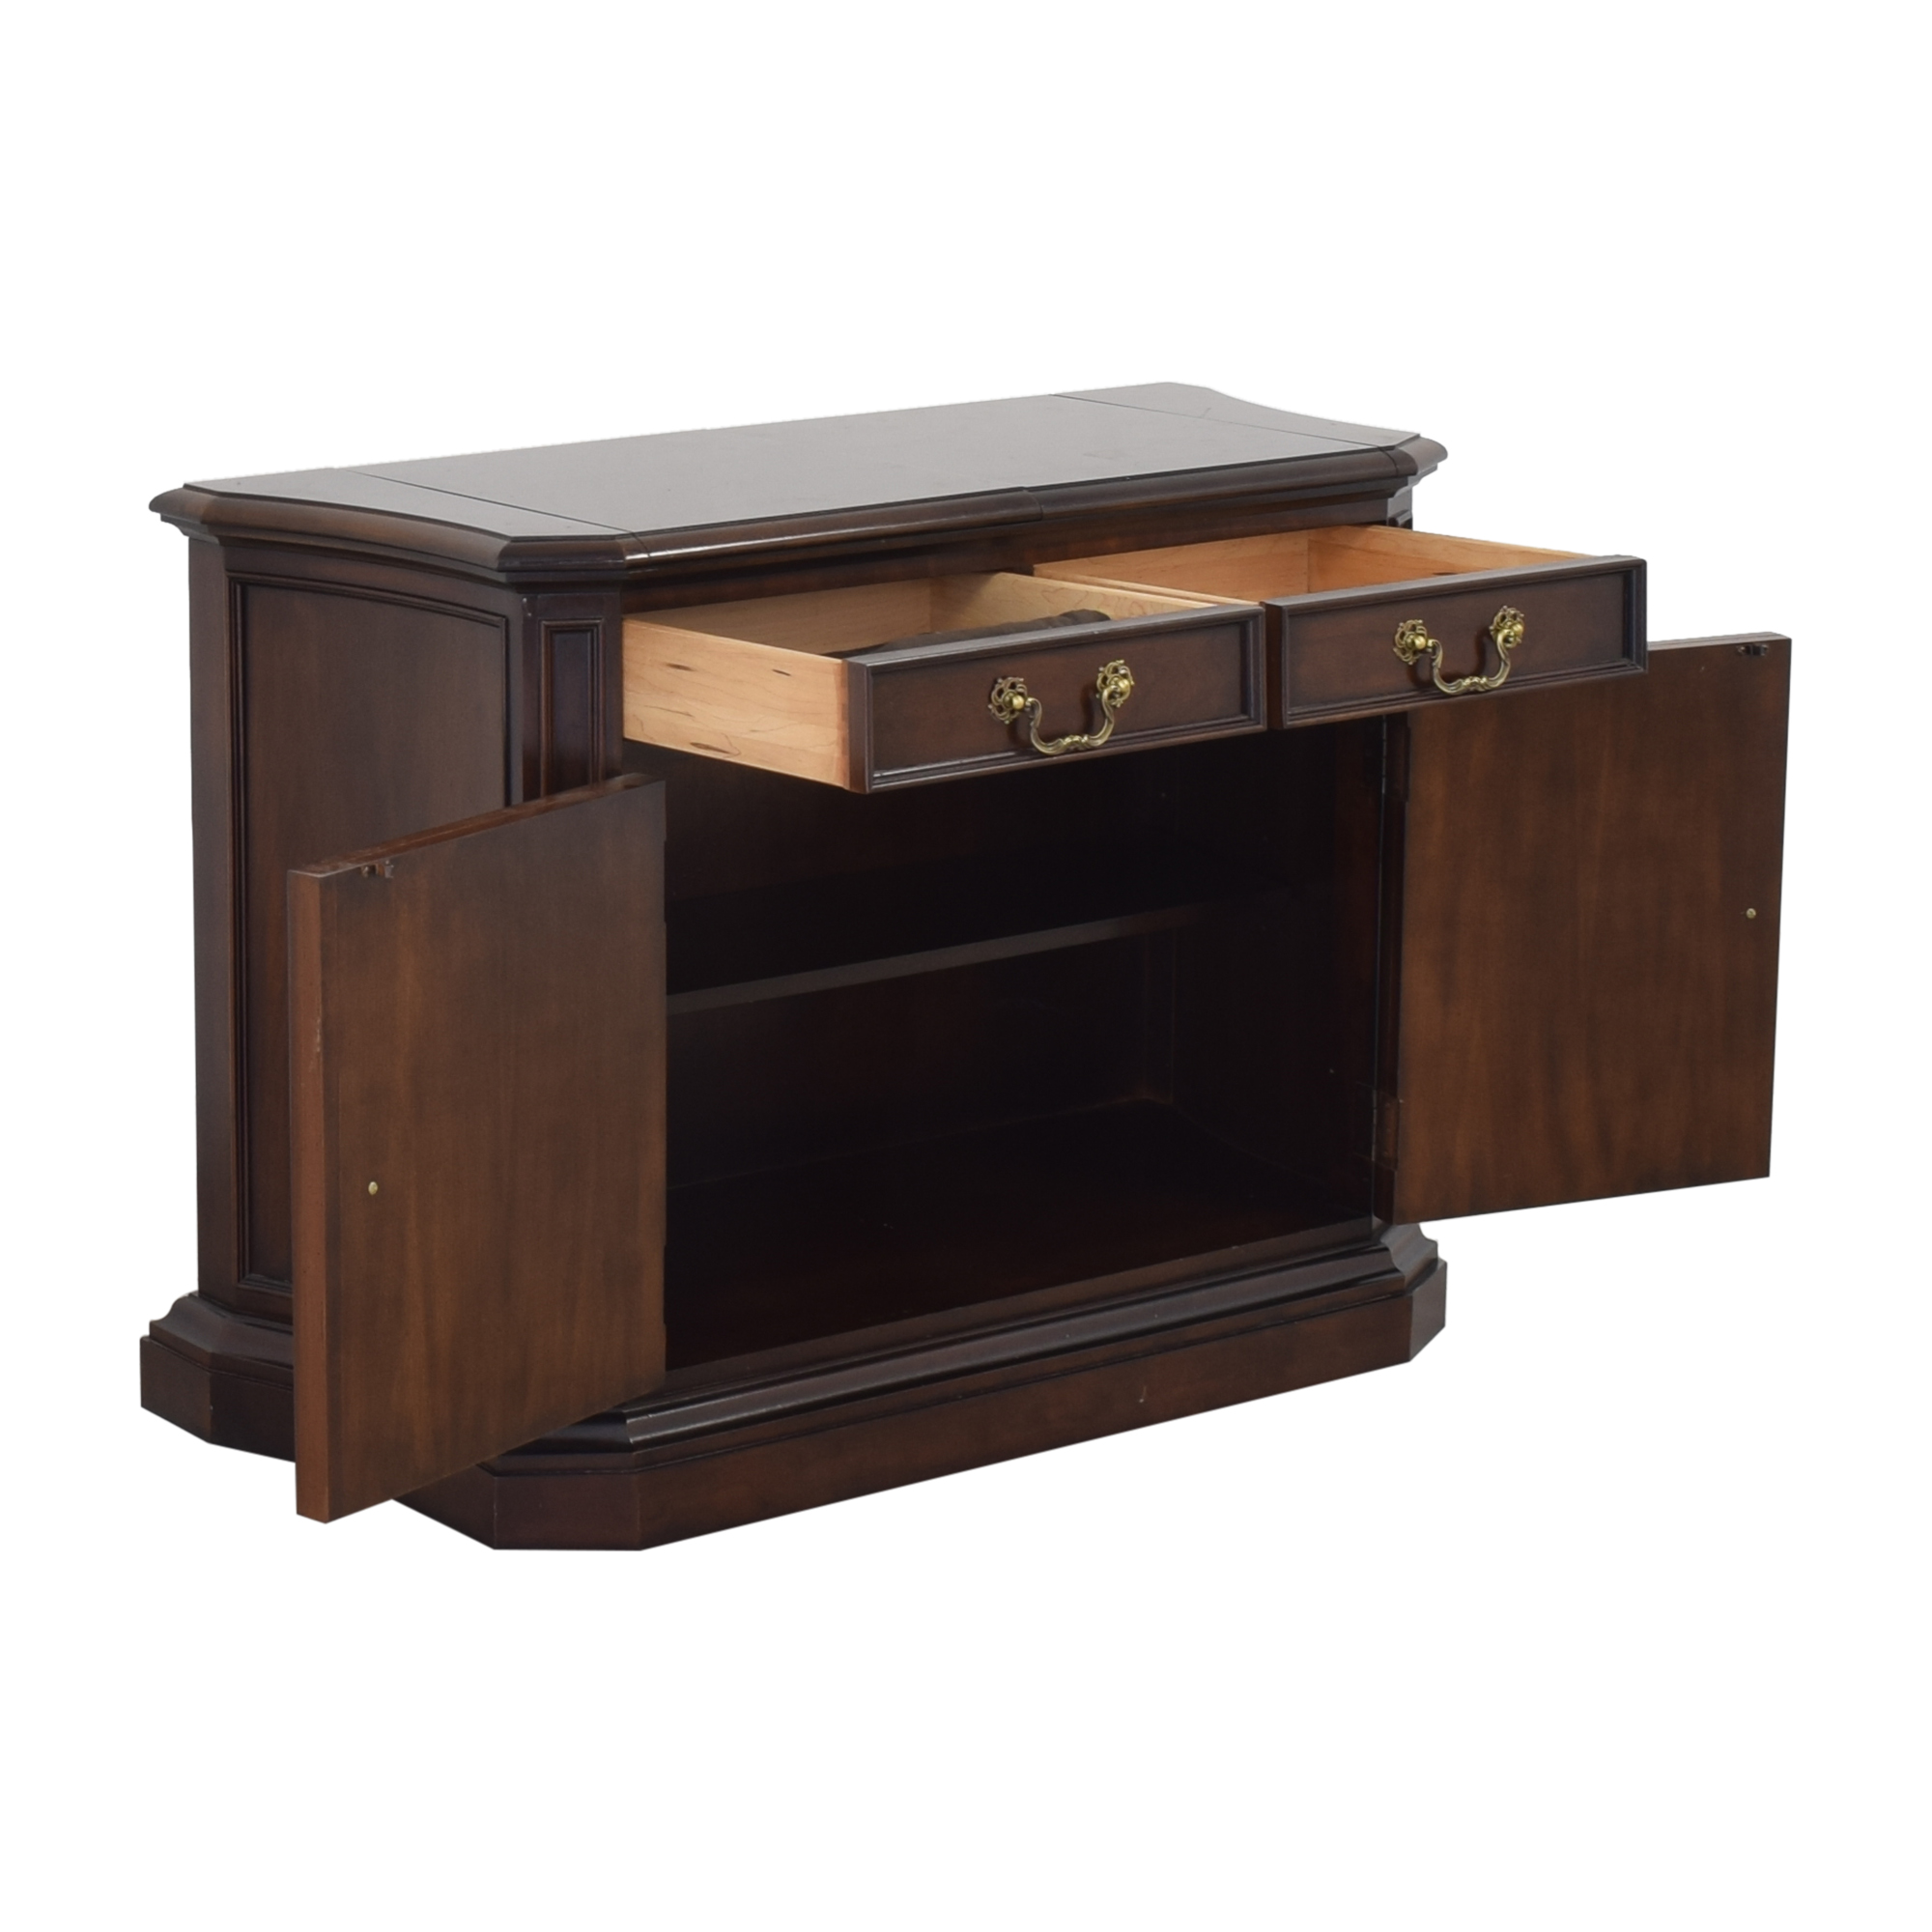 Century Furniture Century Furniture Traditional Style Buffet price